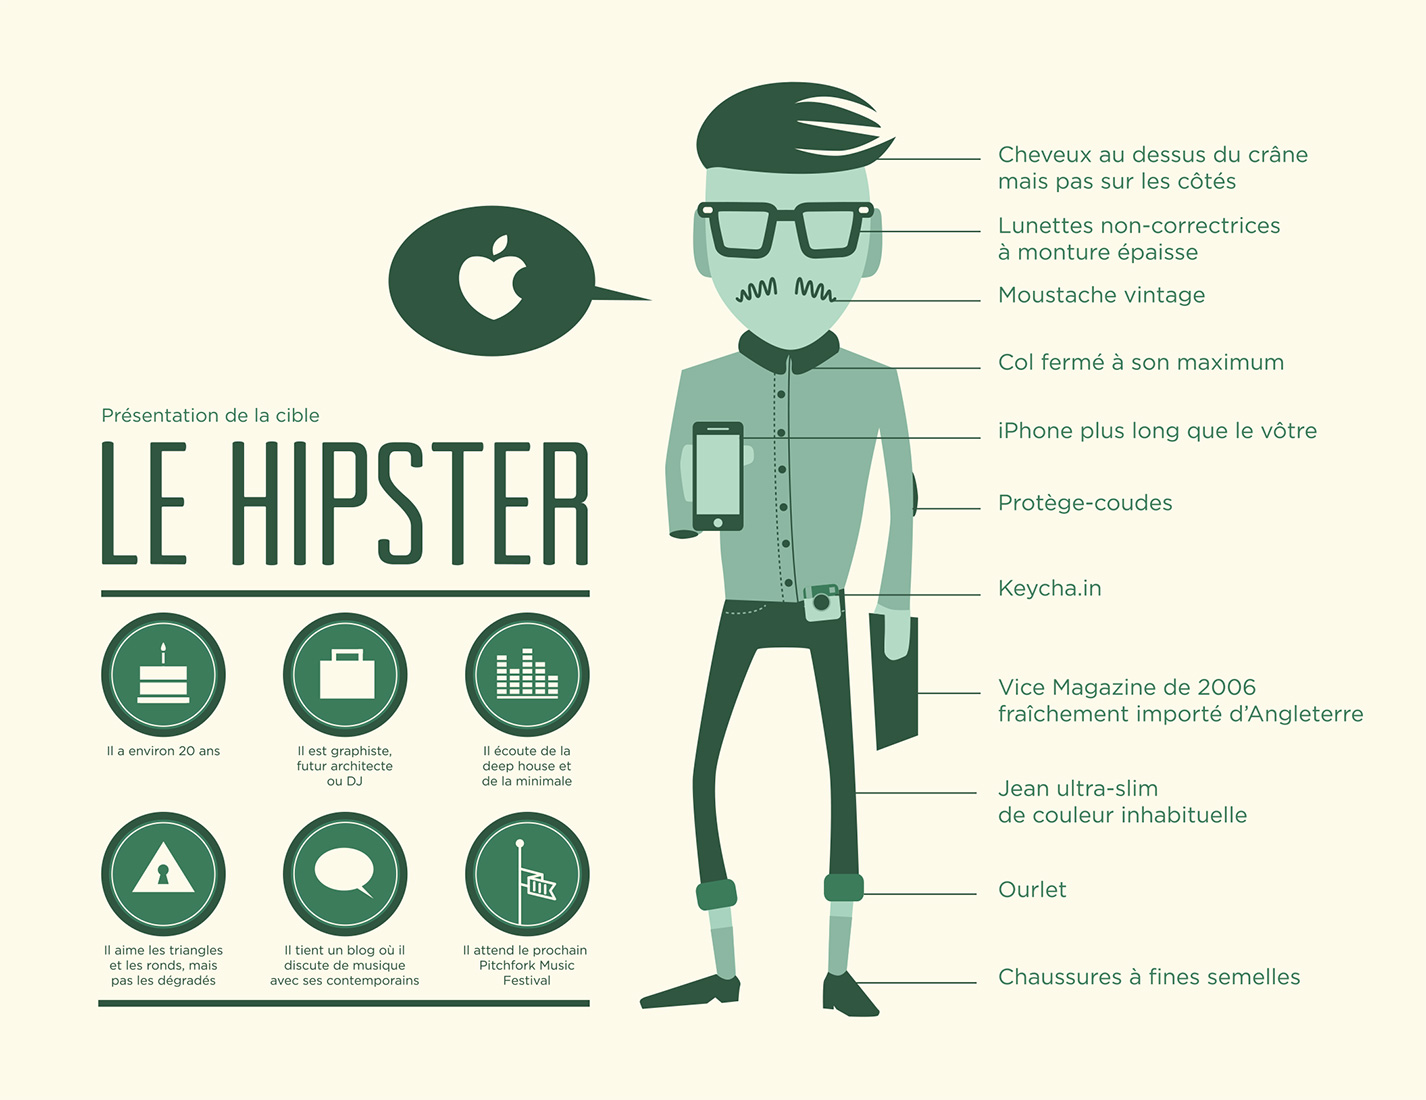 Le Hipster